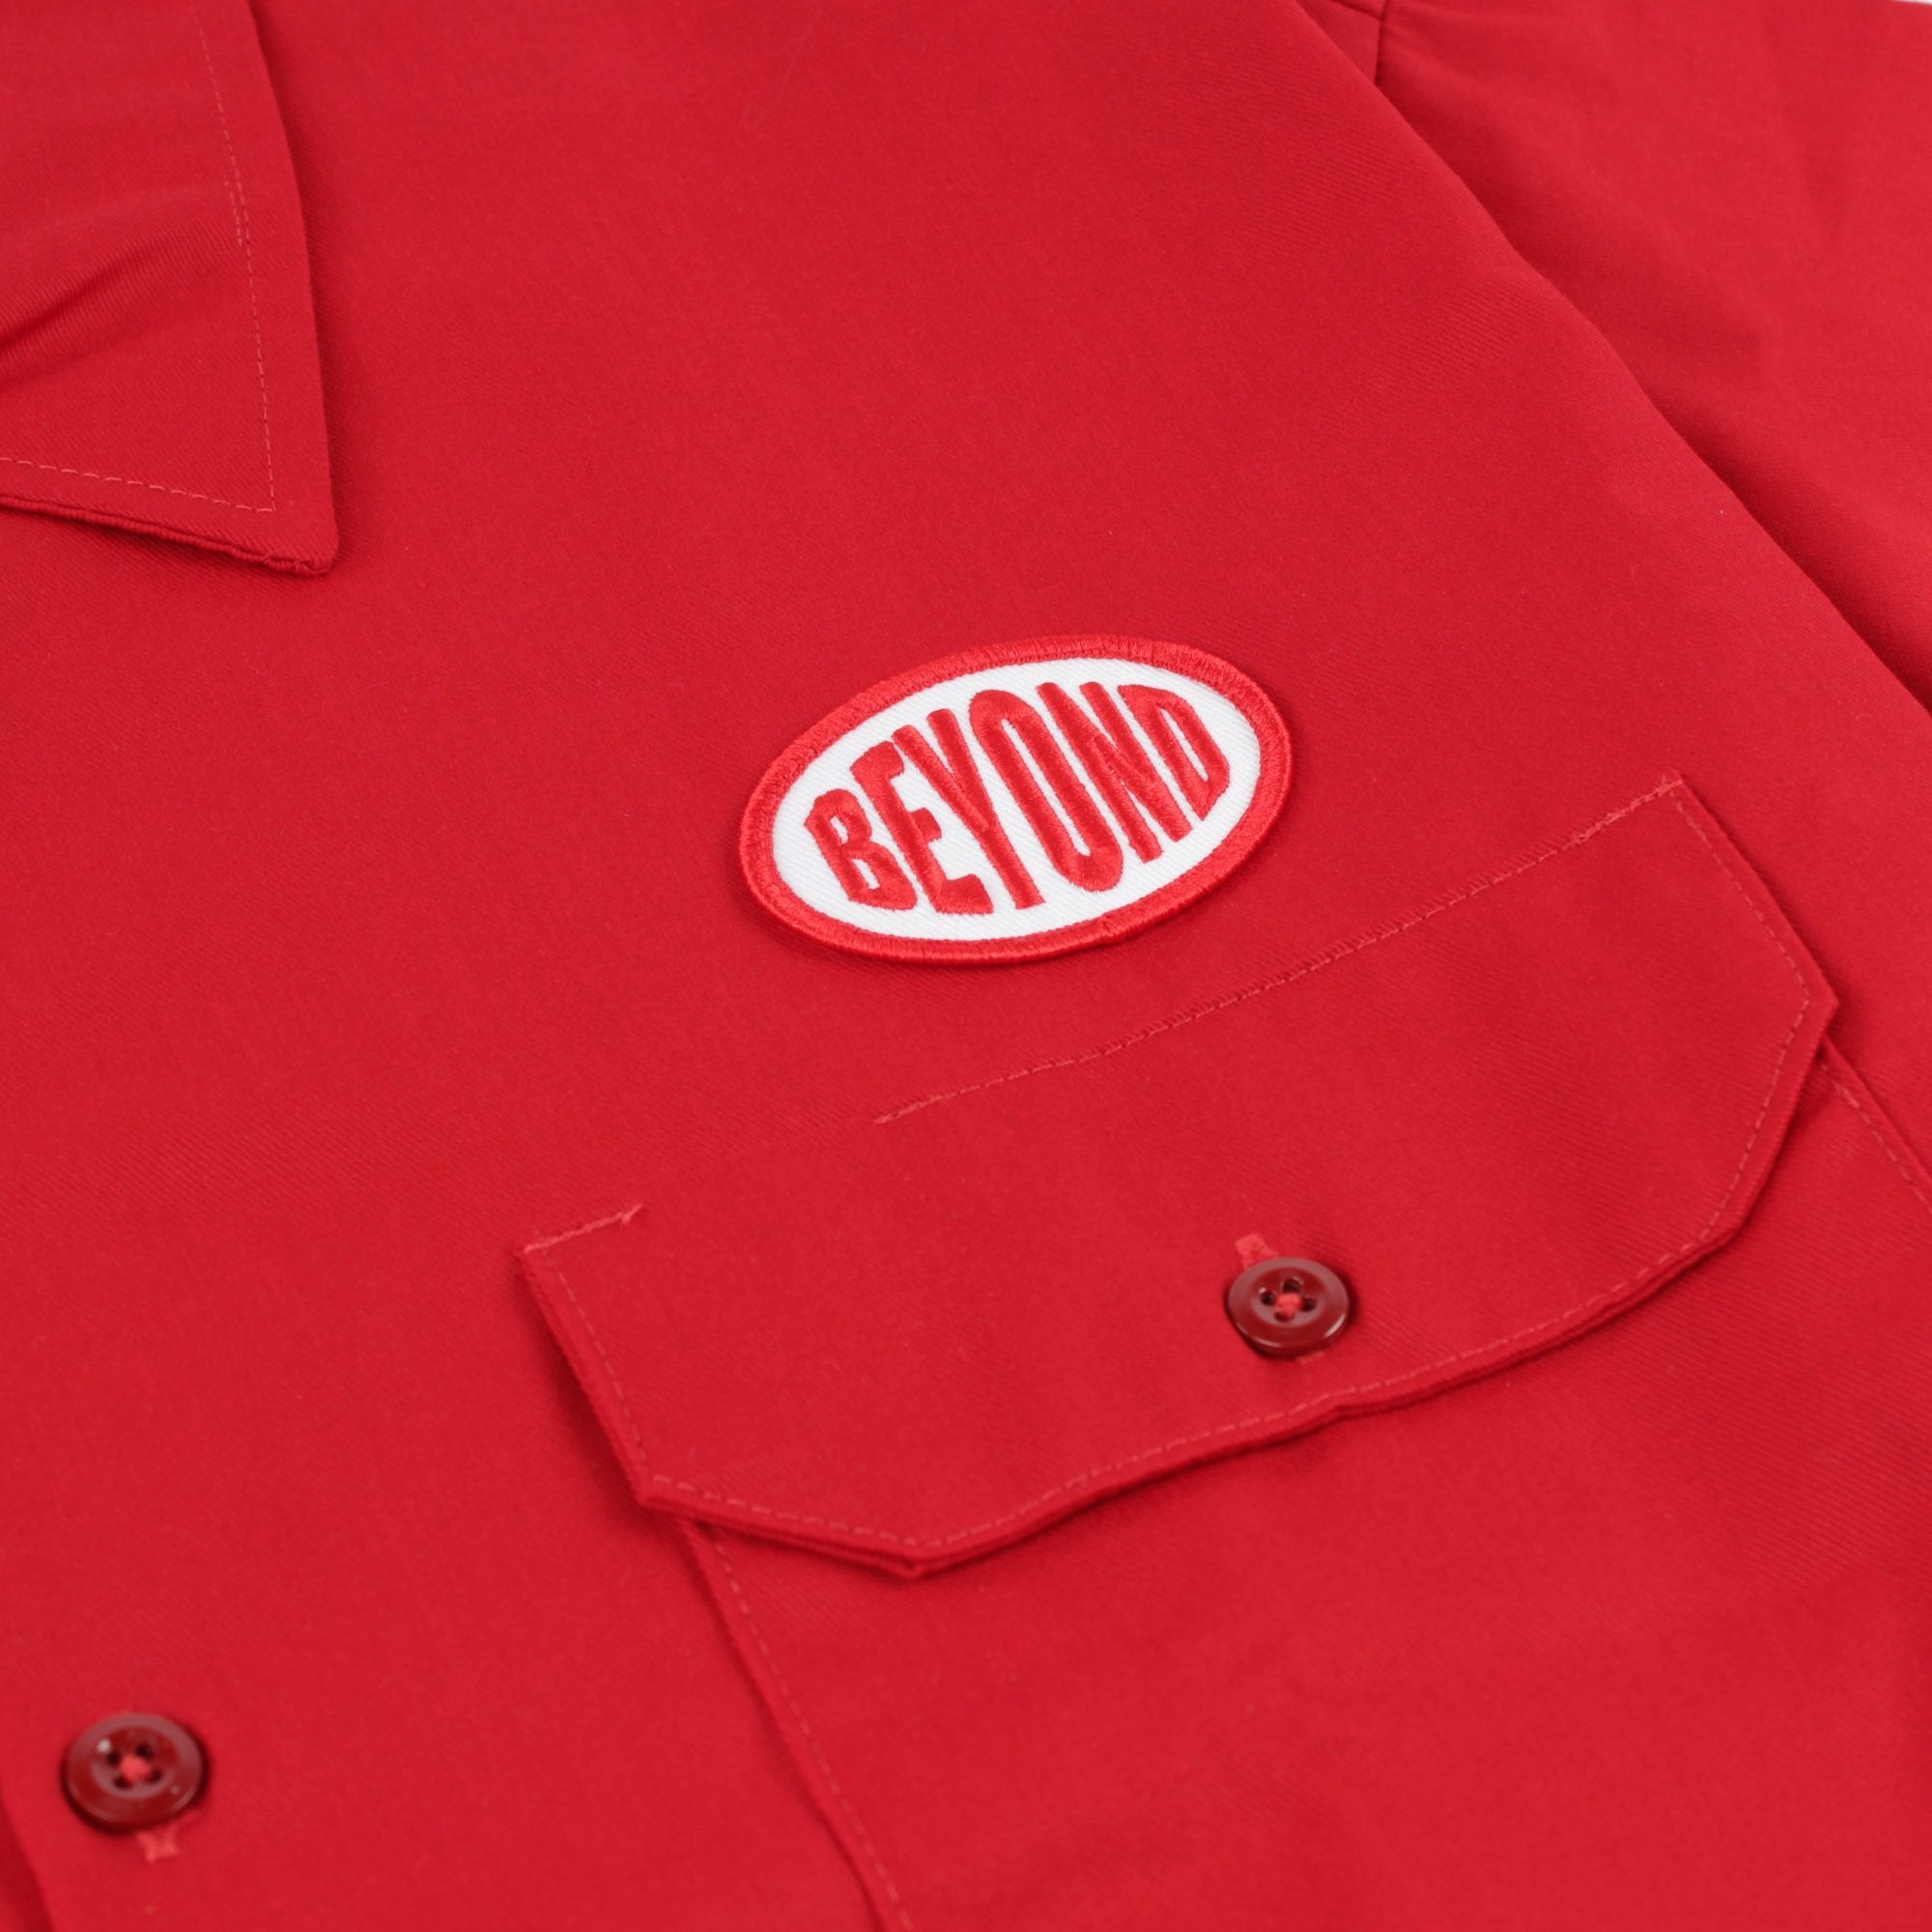 Beyond Bupont Work Shirt Product Photo #2